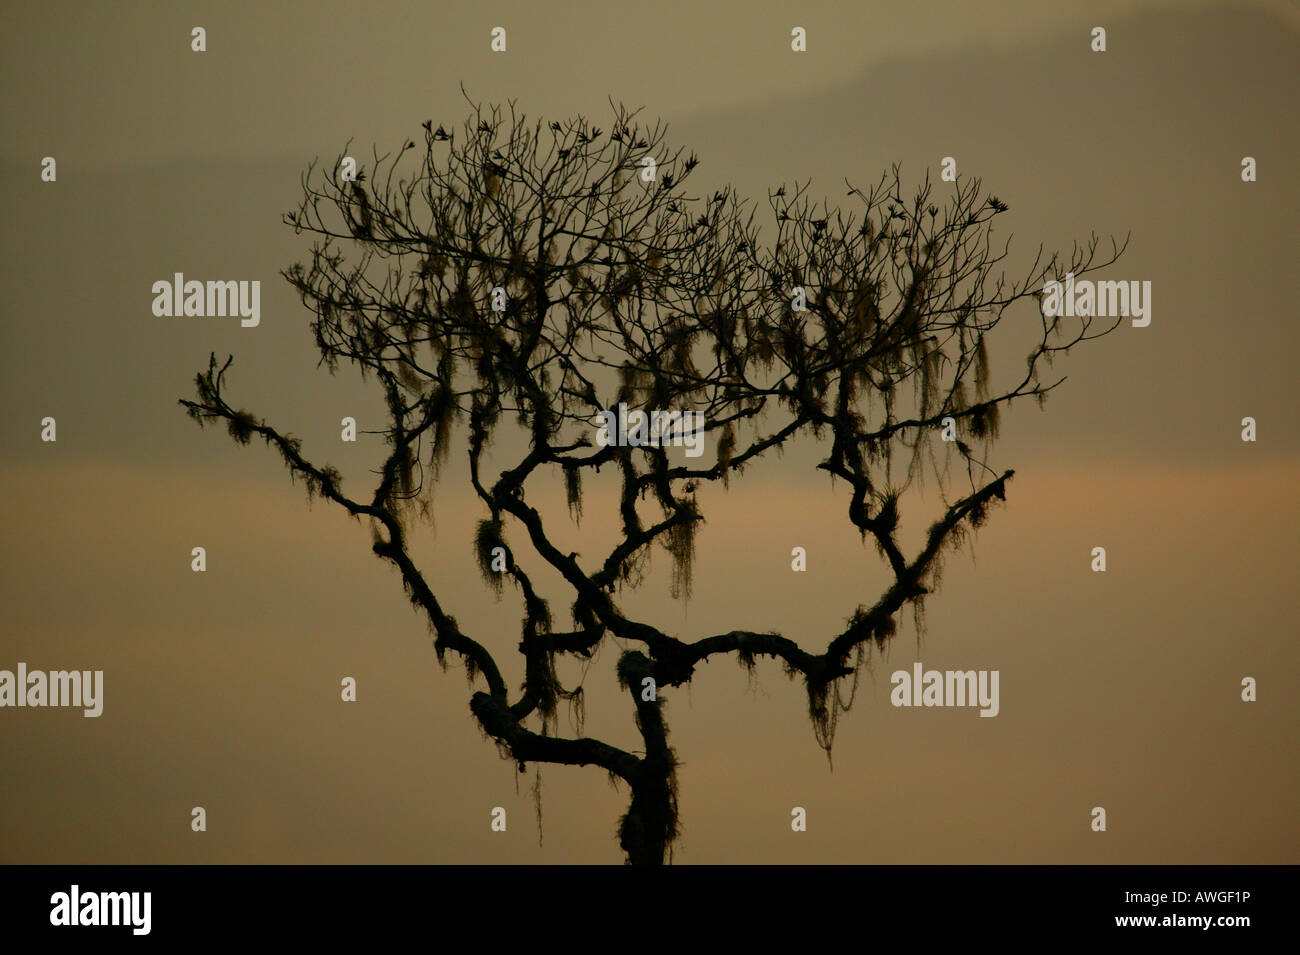 Tree and misty landscapes at Cerro Pirre in Darien national park, Darien province, Republic of Panama. - Stock Image